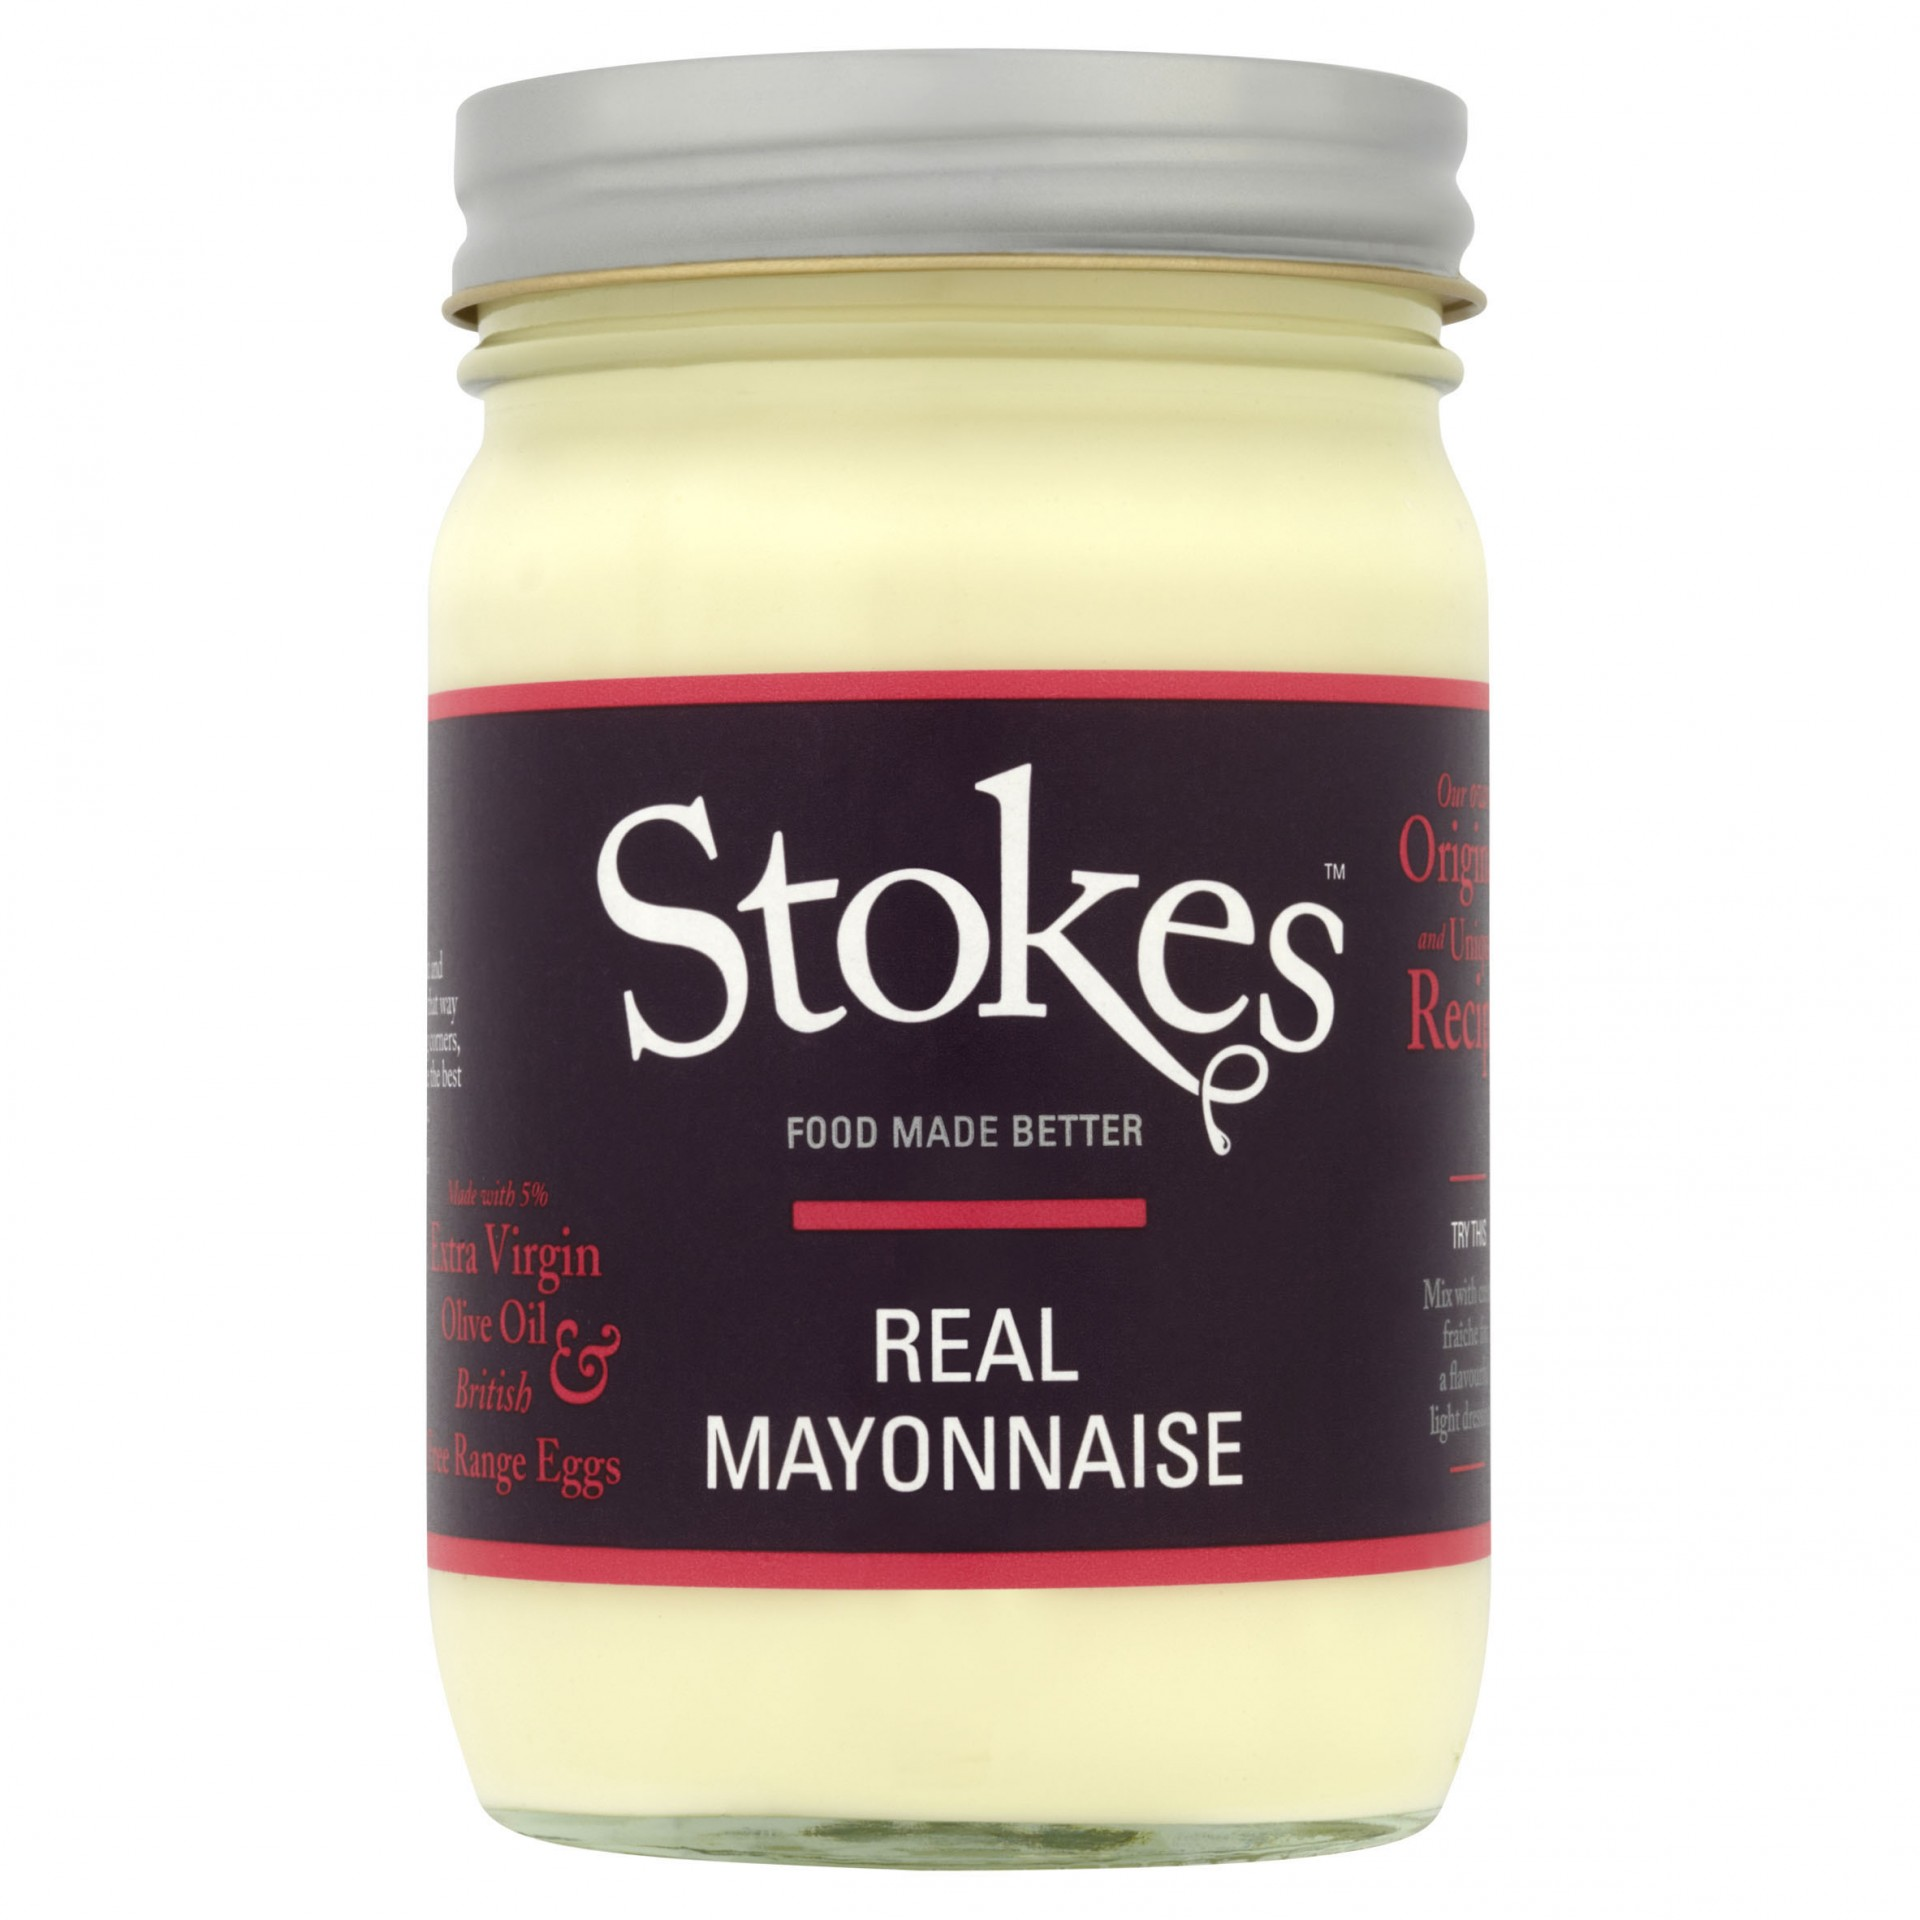 STOKES Real Mayonnaise (Glass)